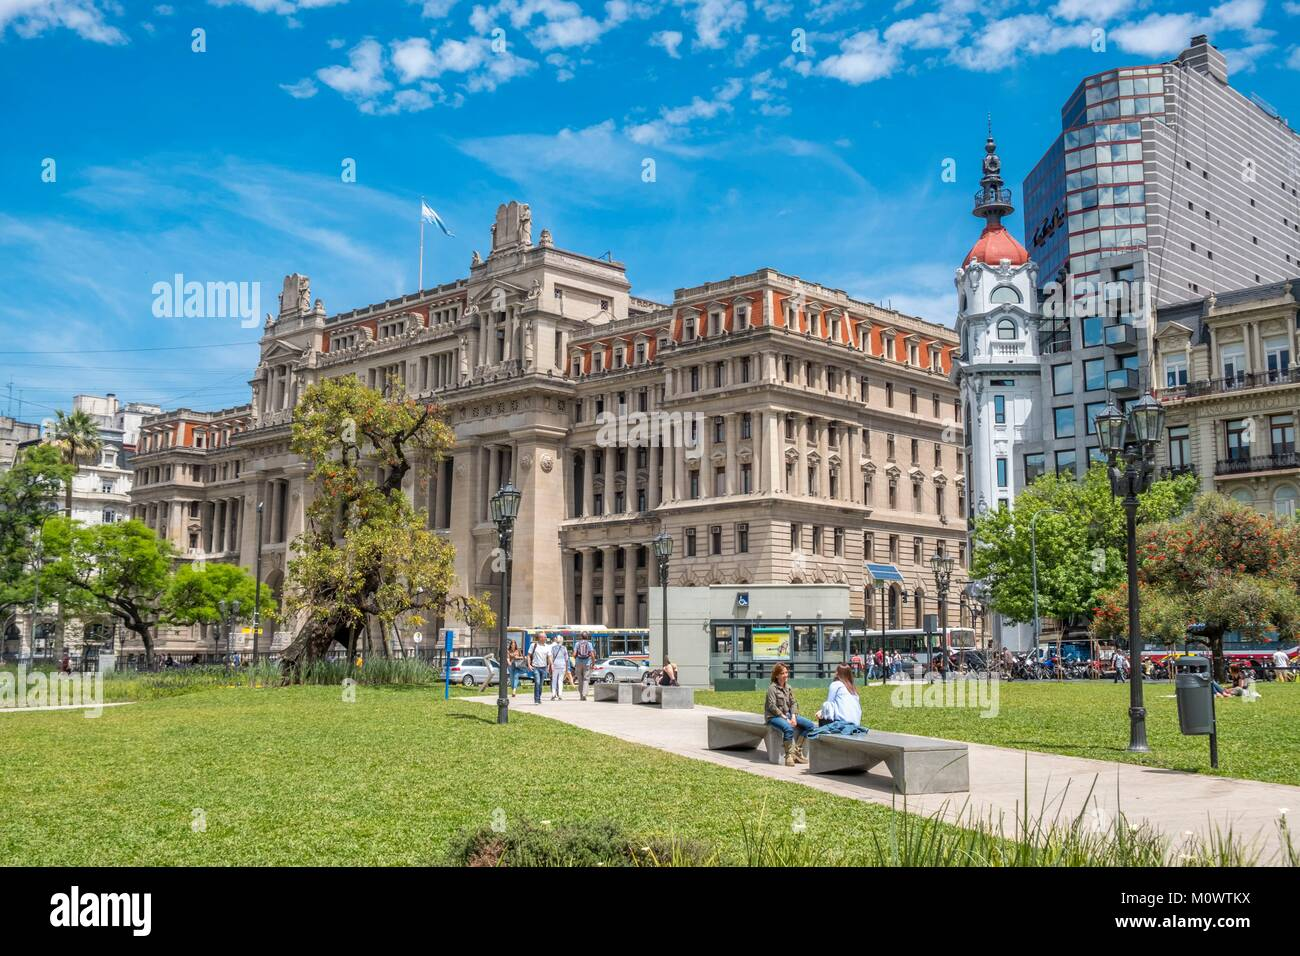 Argentina,Buenos Aires province,Buenos Aires,Tribunales,plaza Lavalle - Stock Image